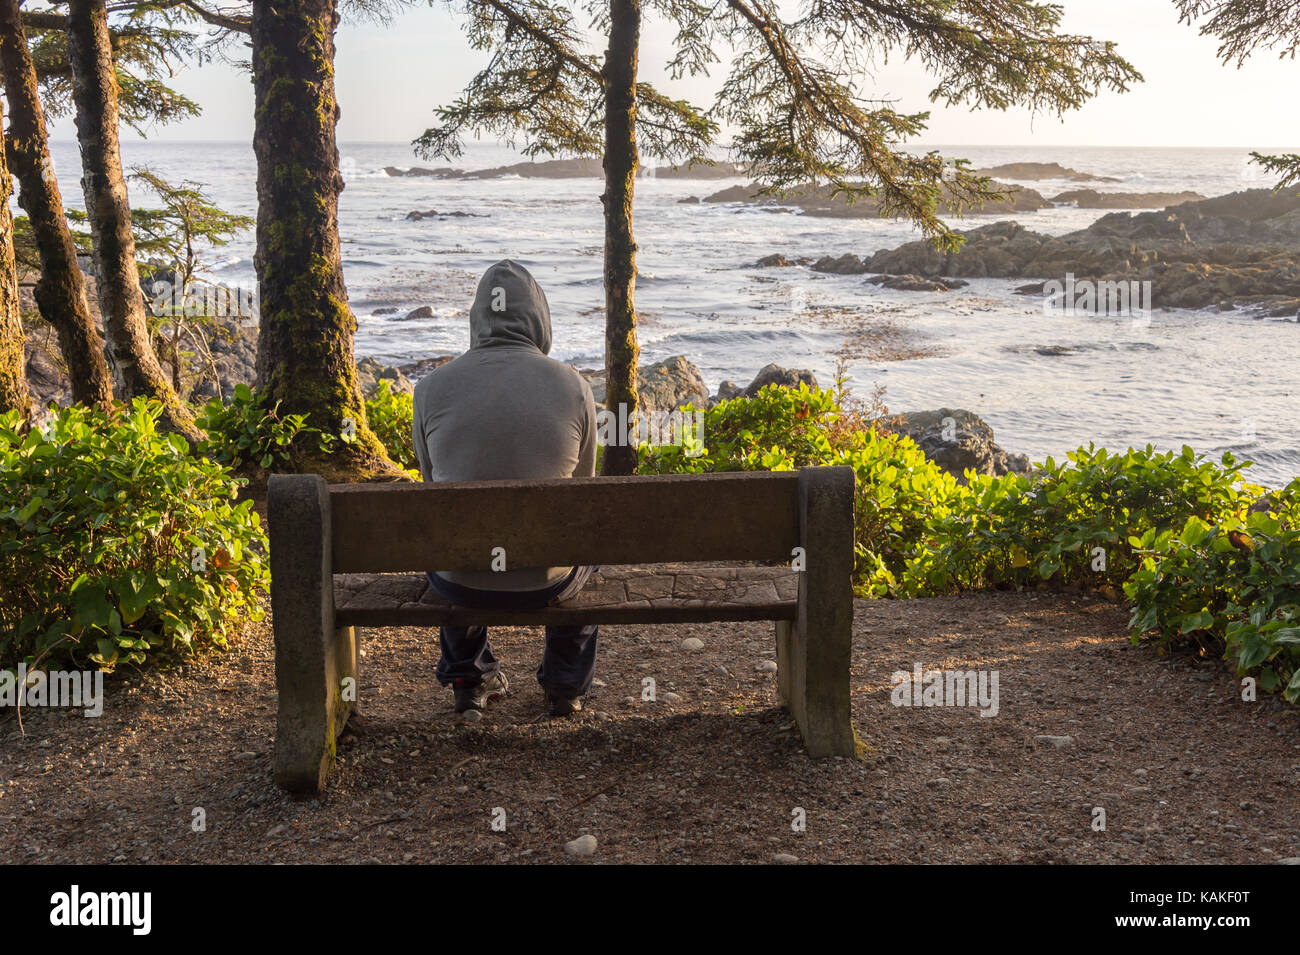 Man sitting on bench overlooking sea on Vancouver Island at sunset - Stock Image